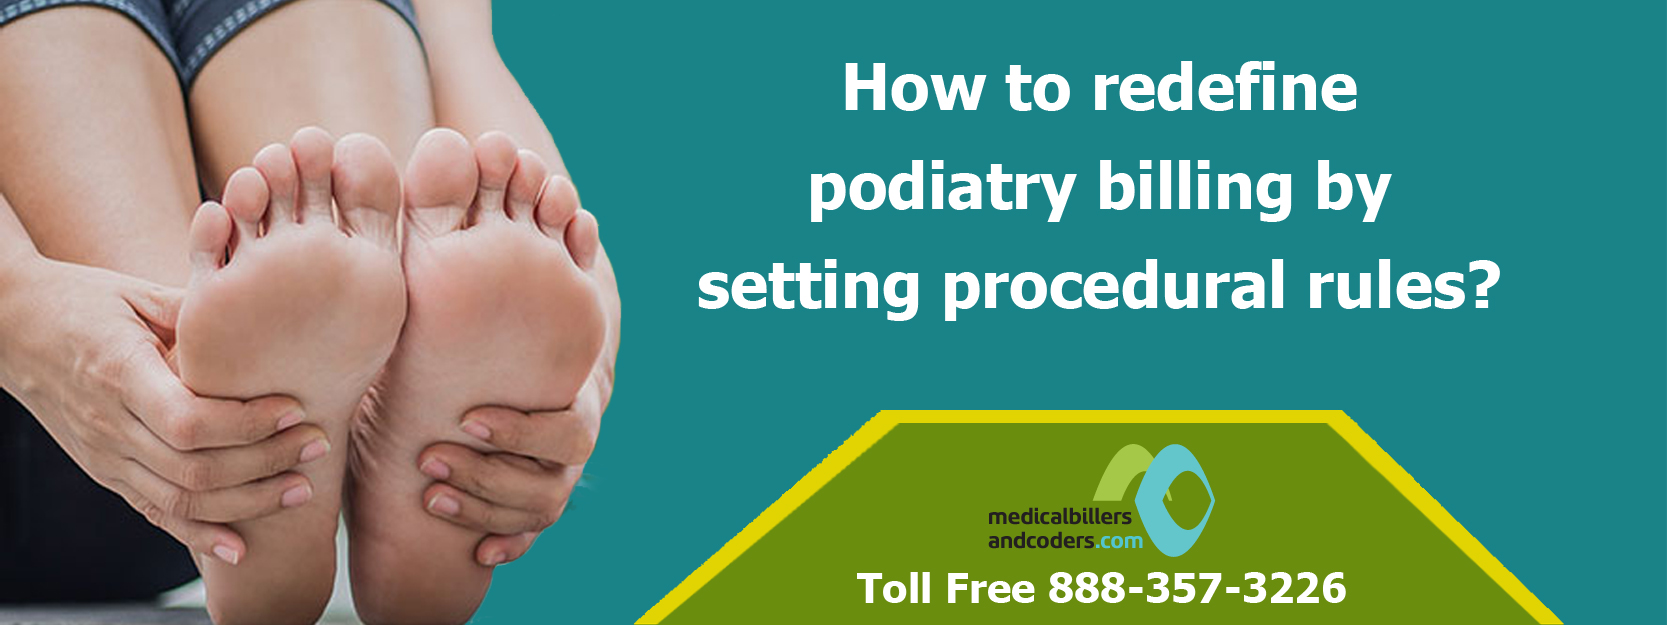 How-to-redefine-podiatry-billing-by-setting-procedural-rules?